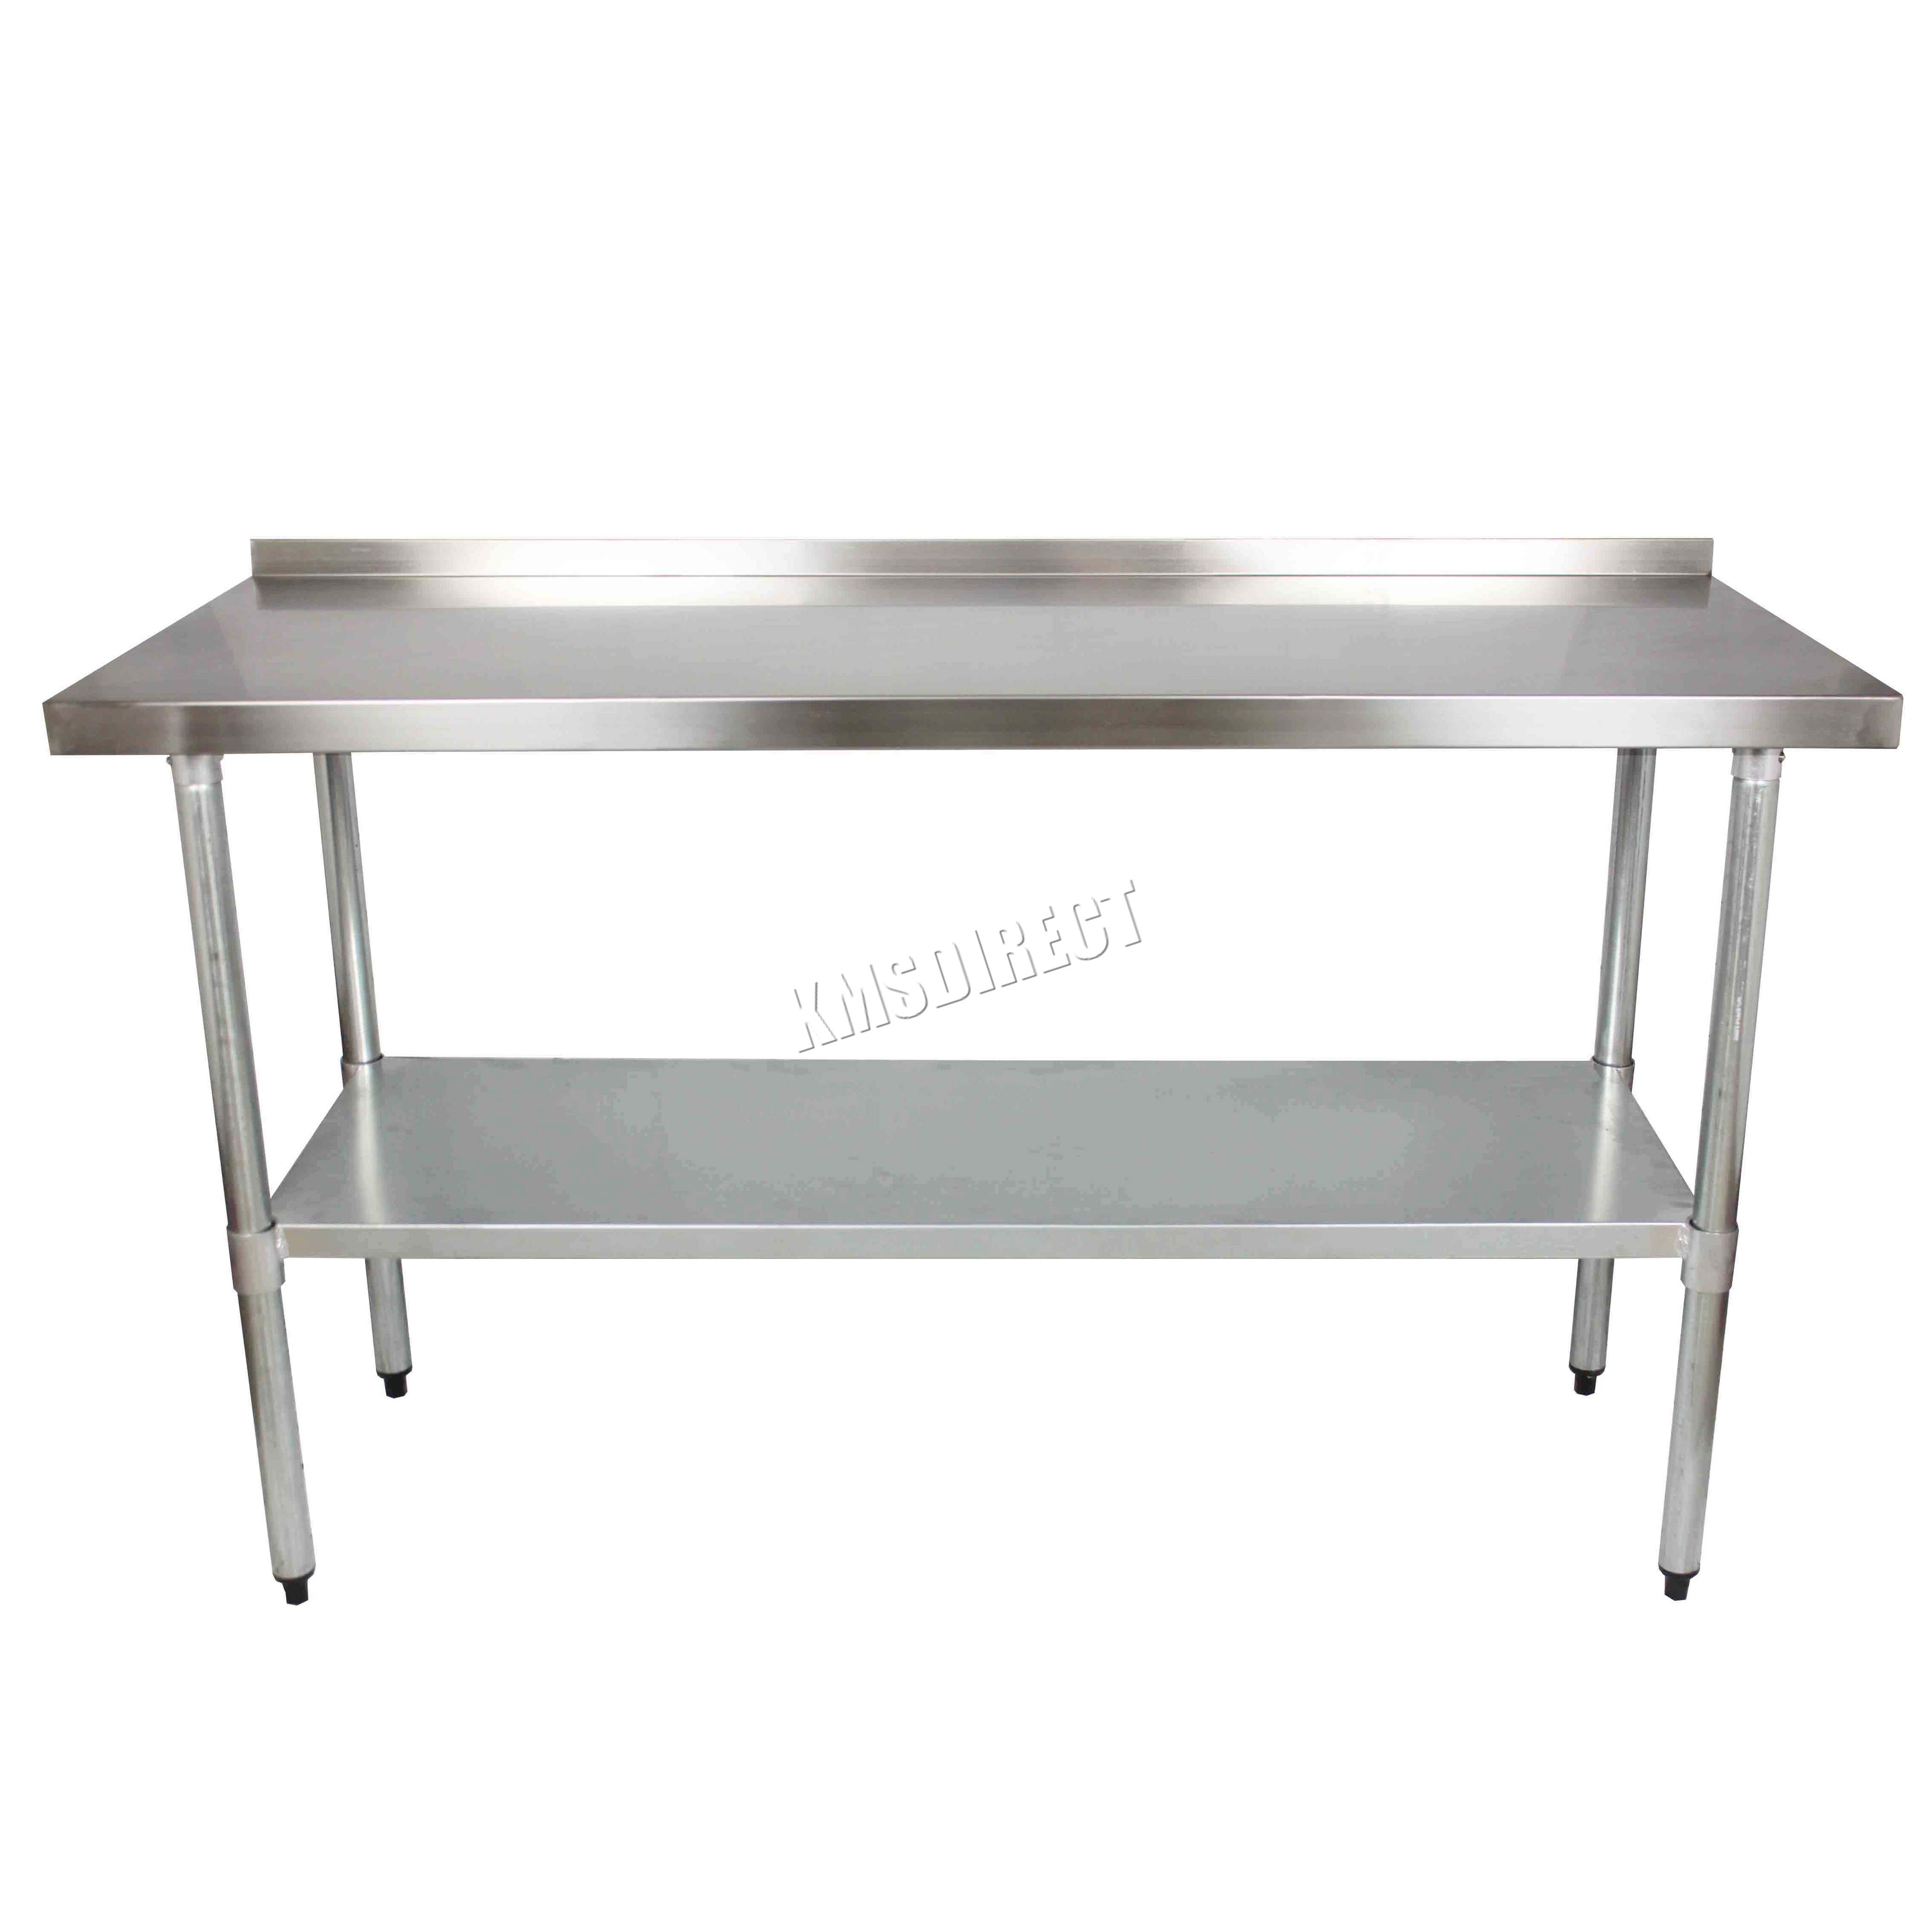 Sentinel WestWood Stainless Steel Catering Table Backsplash Work Bench  Kitchen 2FT X 5FT